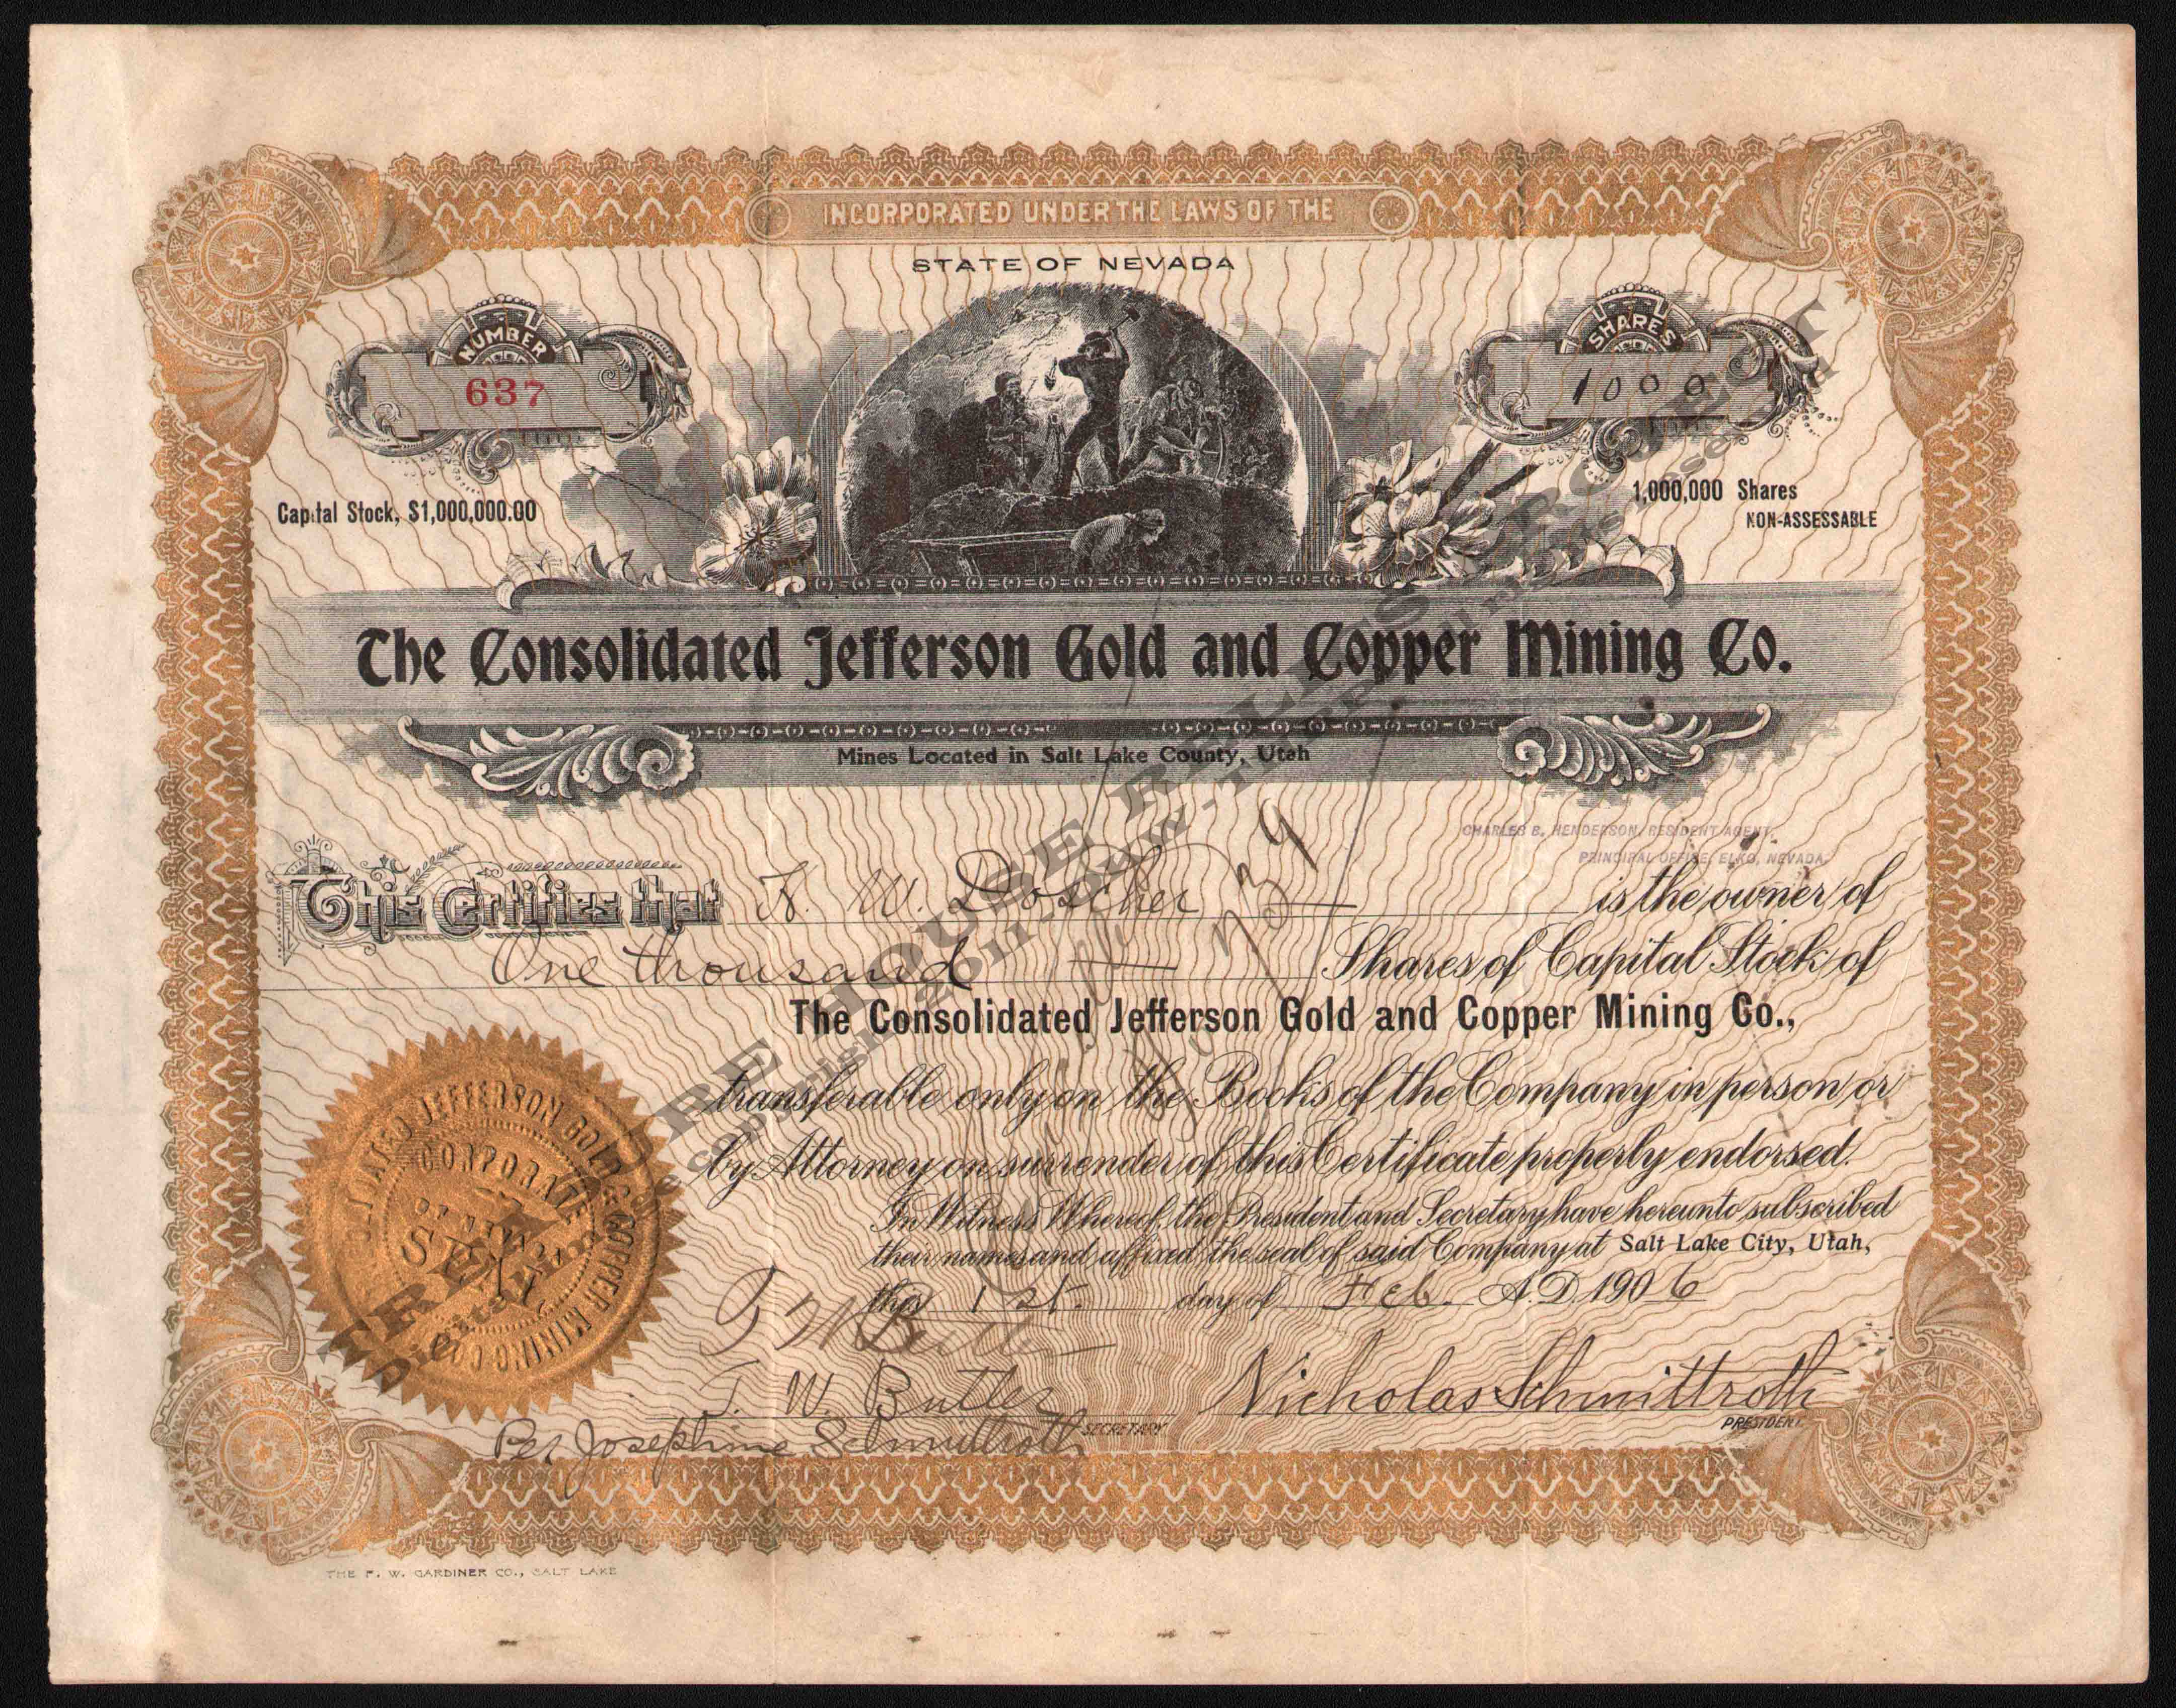 CONSOLIDATED_JEFFERSON_GOLD___COPPER_MINING_CO_637_1906_400_emboss.jpg